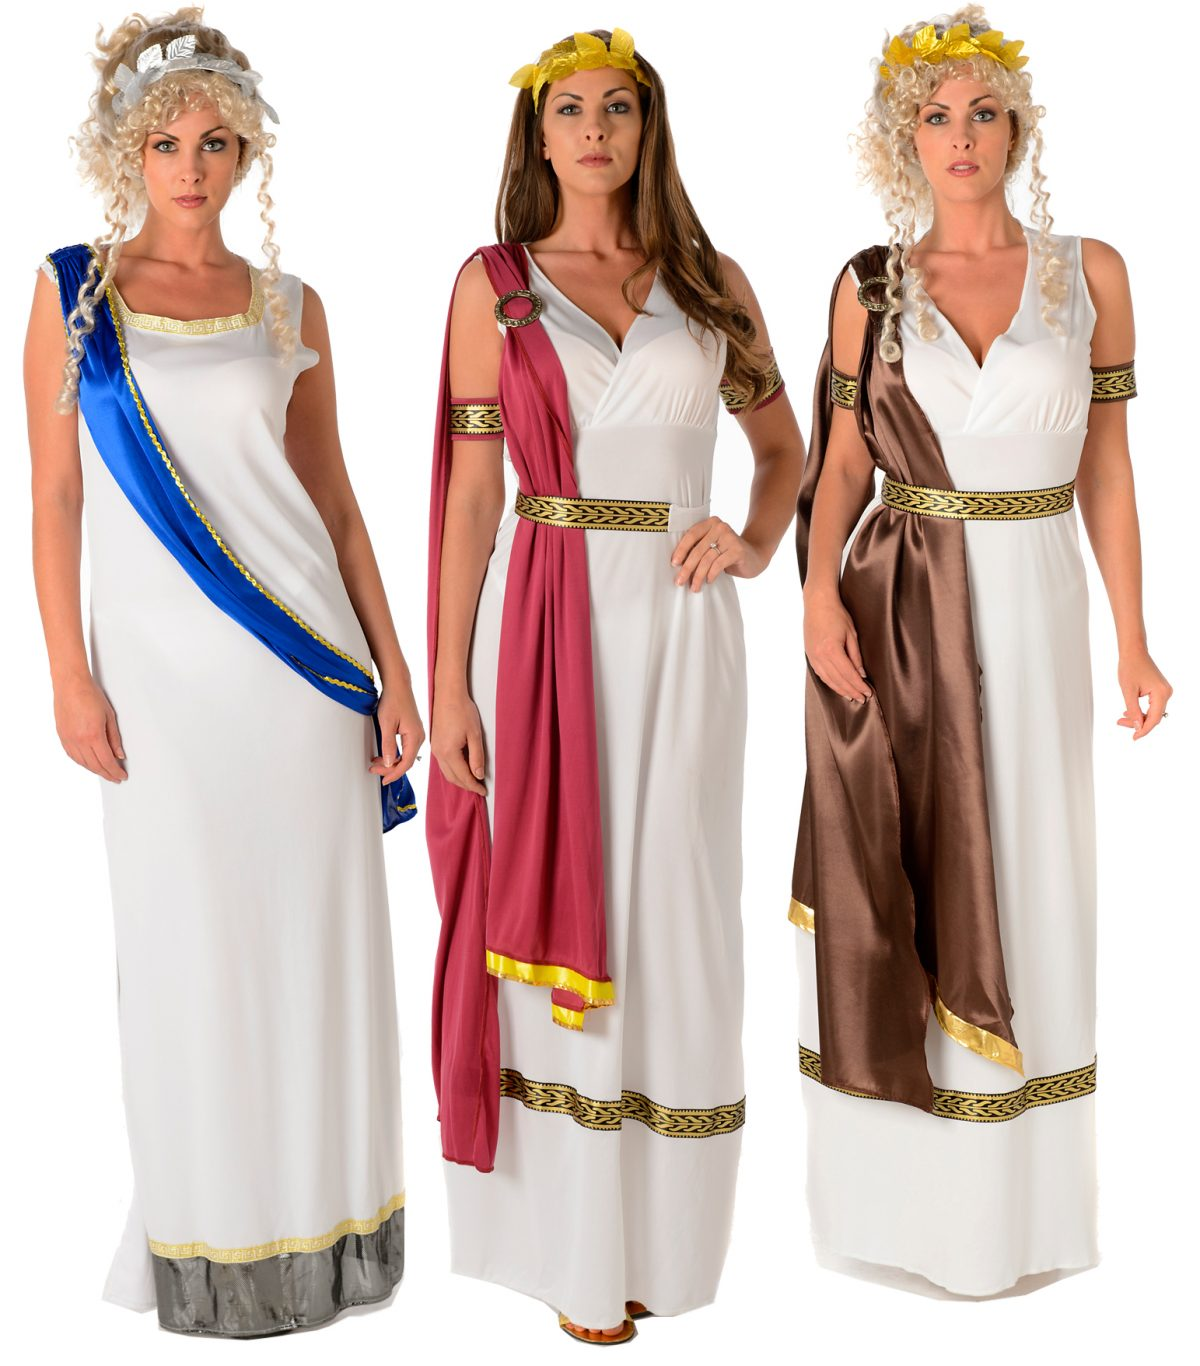 d44266cc2 Fashionable Women Of Ancient Greece And What They Wore - Edithyeung